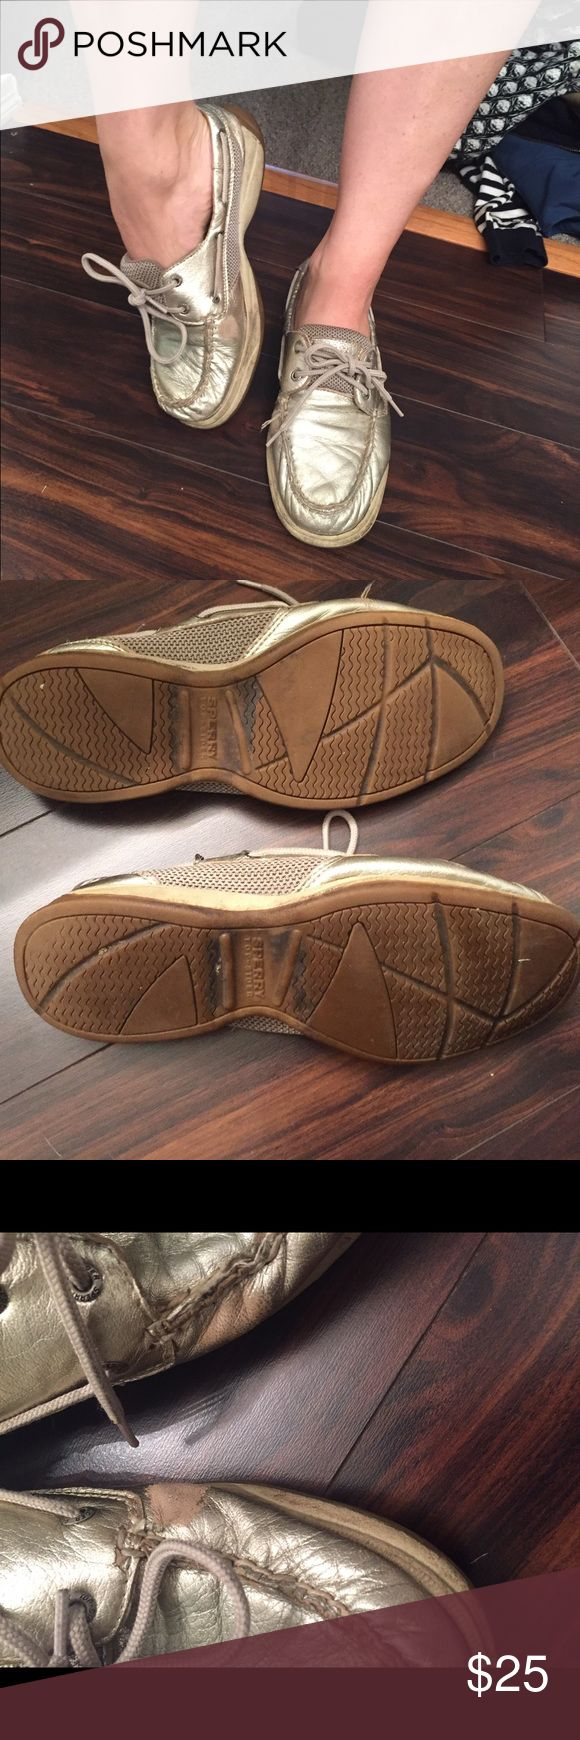 ‼️‼️‼️Sliver sperry boat shoes‼️‼️‼️ Amazing boat shoes. The most comfortable shoes ever. I have three other pairs so I'm downsizing. I've worn them a bunch but they don't smell and are still in pretty good shape. On the insides of the outside of the shoes there is some show of wear. If you need a pair of cheap boat shoes take these! Shoes Flats & Loafers